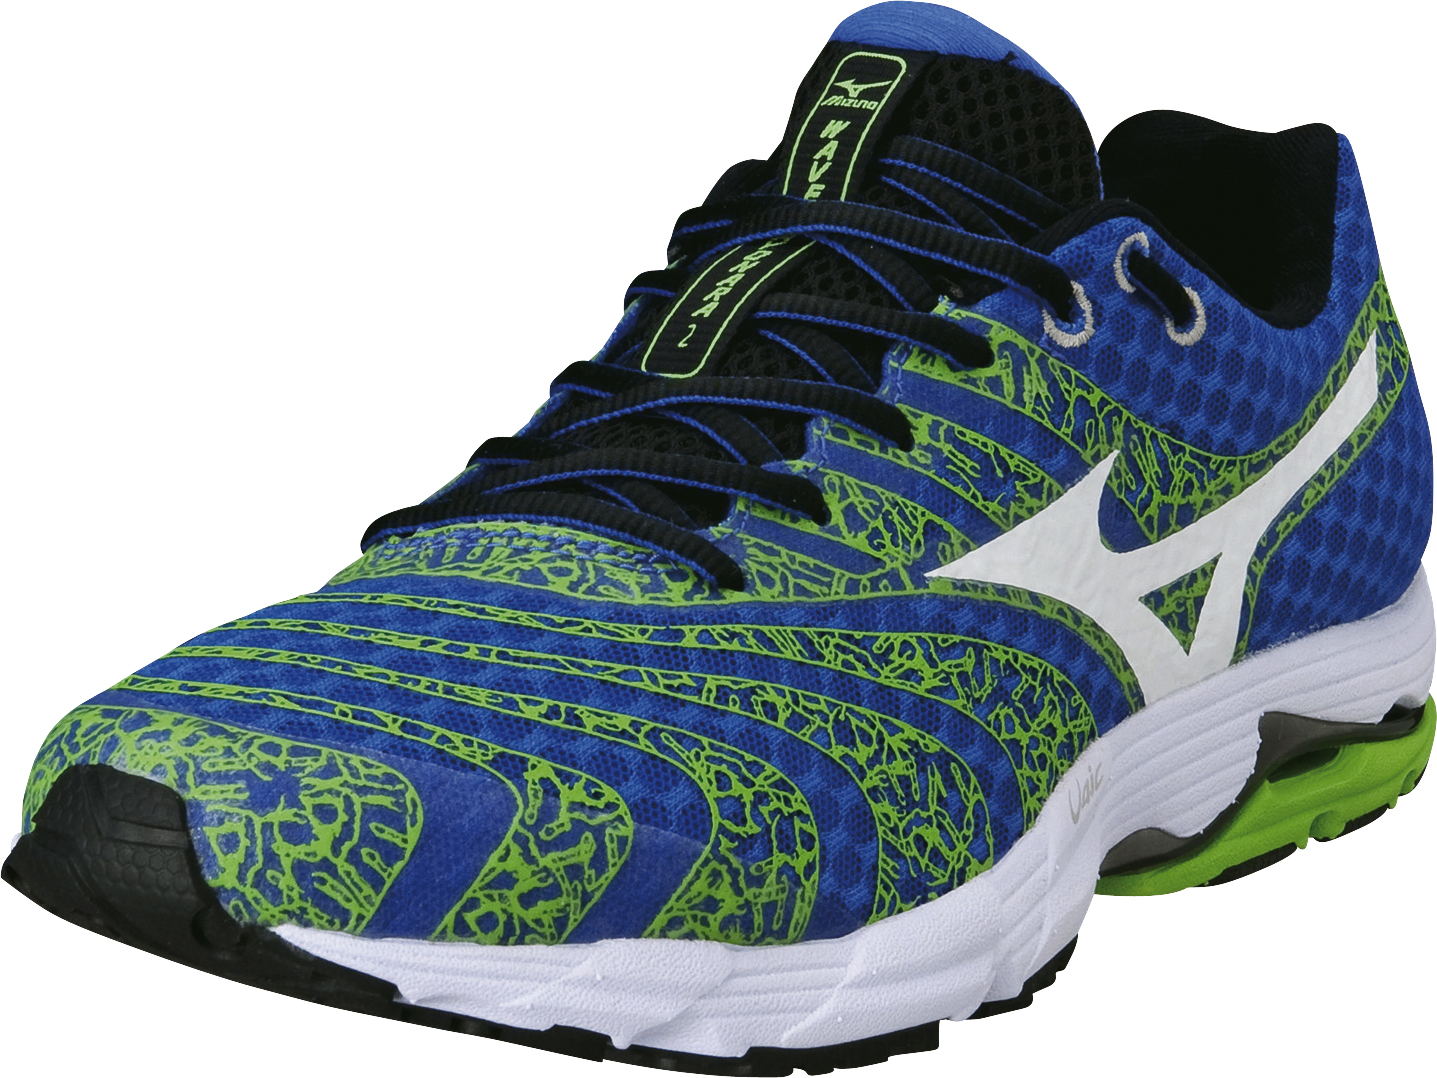 hot sale online ff86a e31b7 ... salomon xt wings 3 trail running shoe mens best shoes for over 50 ...